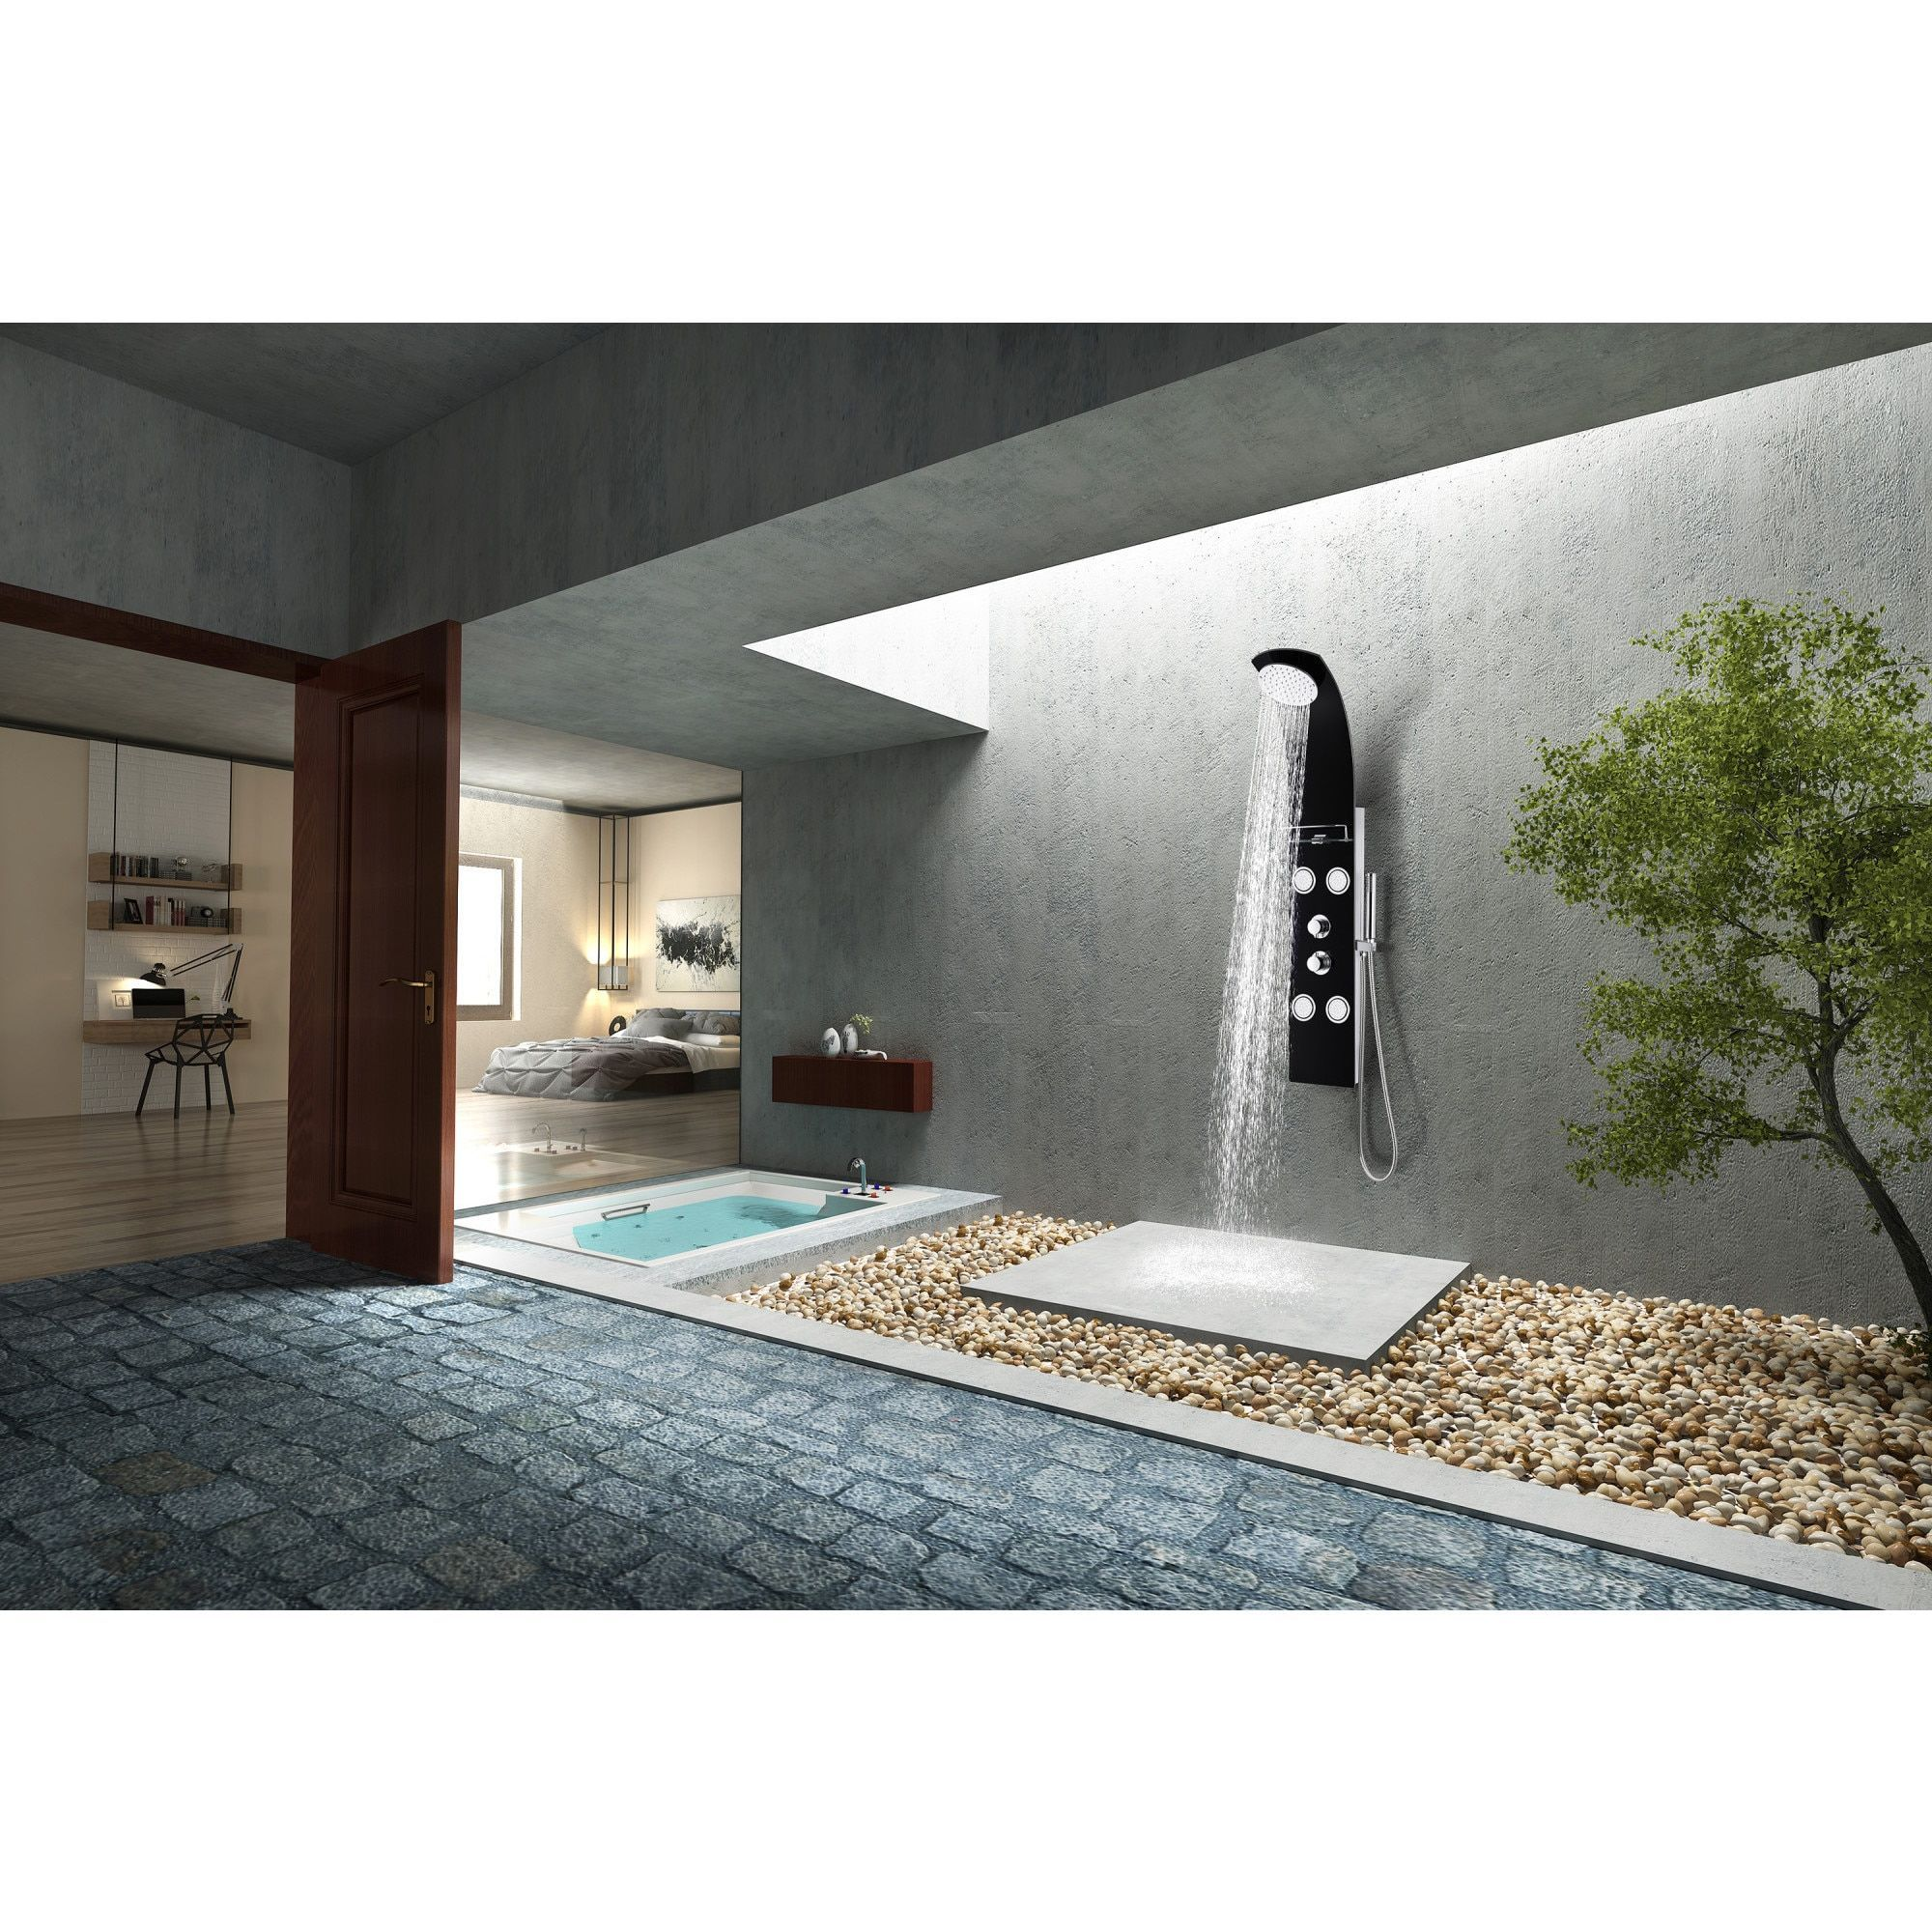 Full Body Shower Panel System With Heavy Rain Shower And